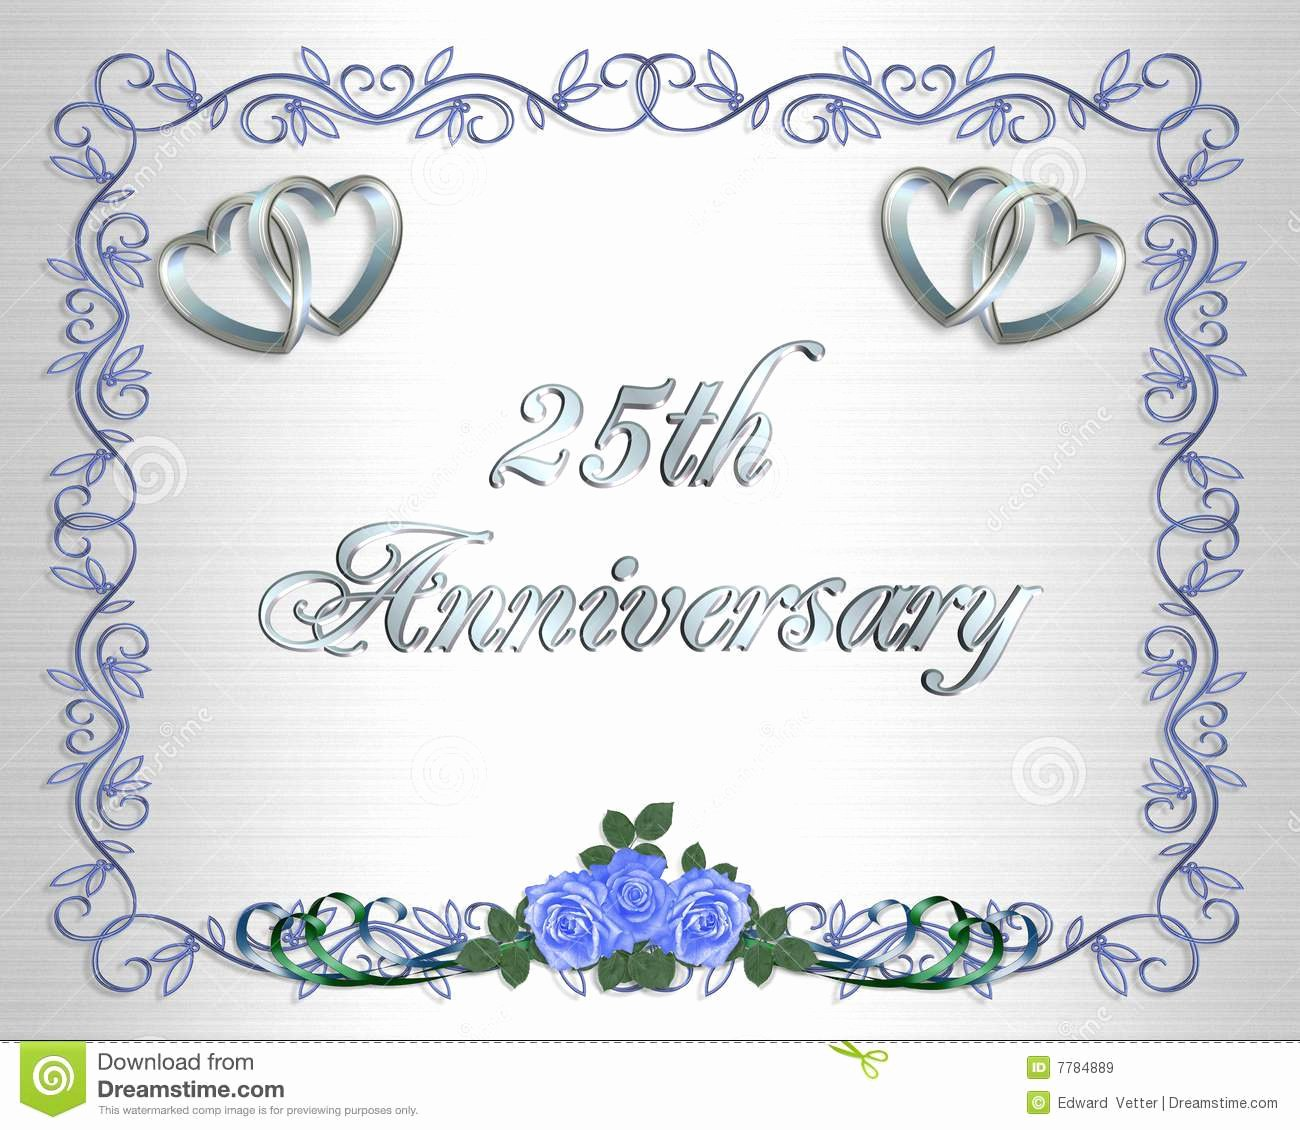 Wedding Anniversary Invitation Template Lovely Wedding Anniversary Invitation Template Free